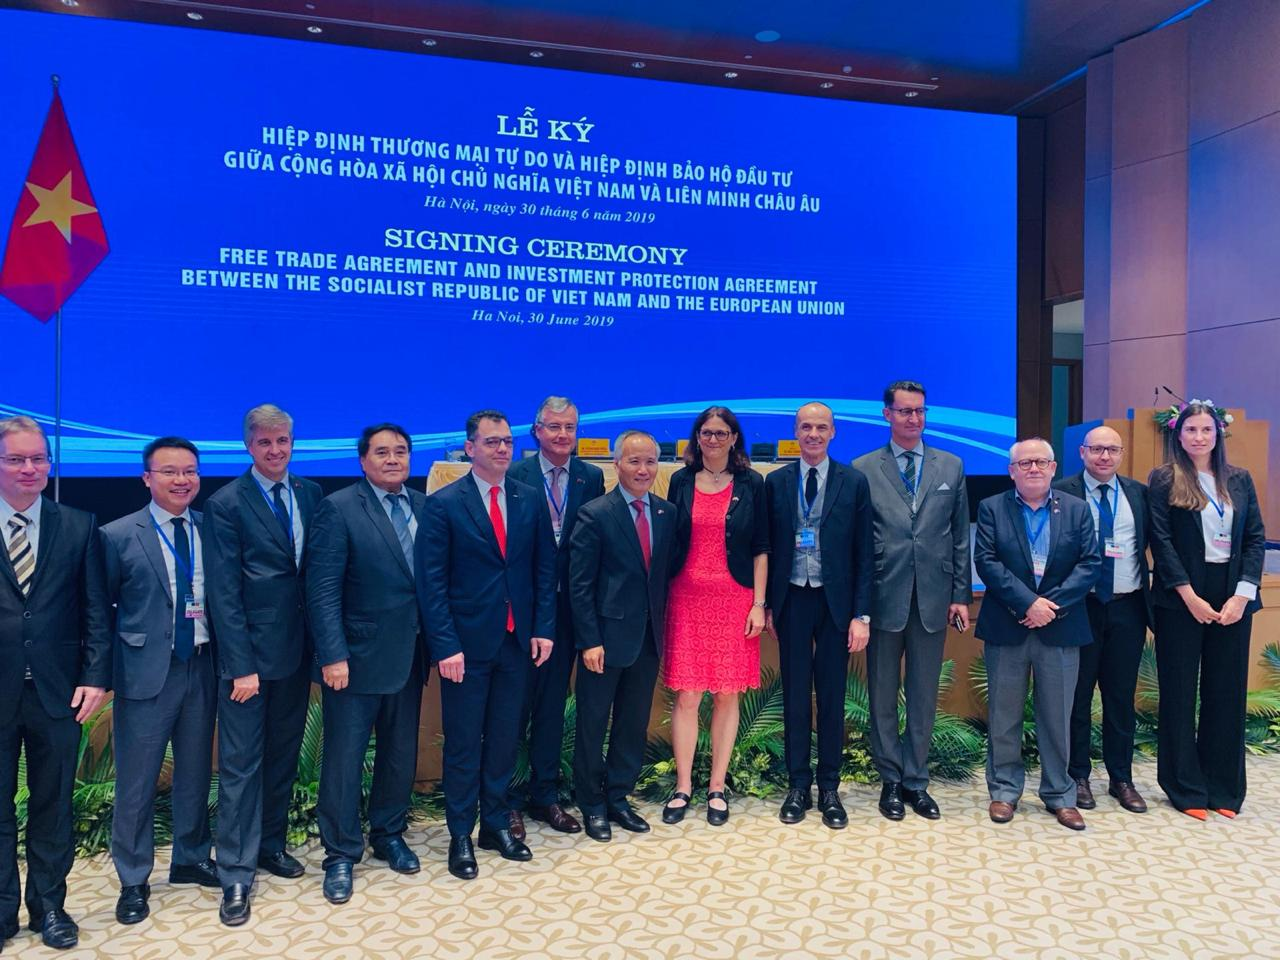 European Union signs Free Trade Agreement (EVFTA) with